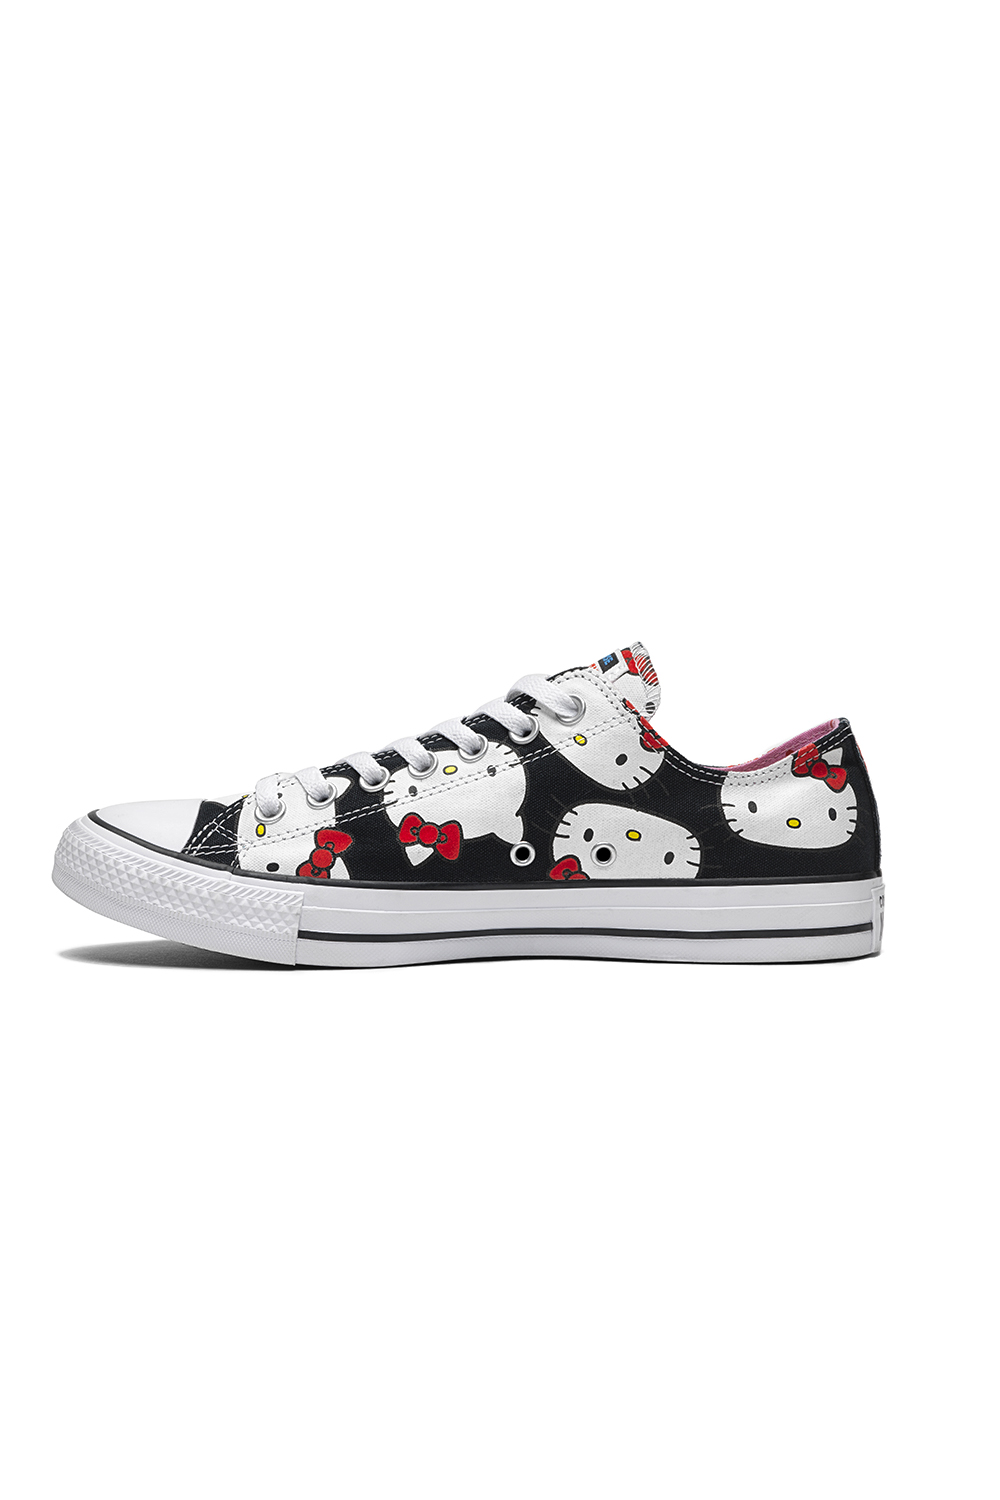 CONVERSE – Unisex sneakers Converse x Hello Kitty Chuck Taylor All Star μαύρα